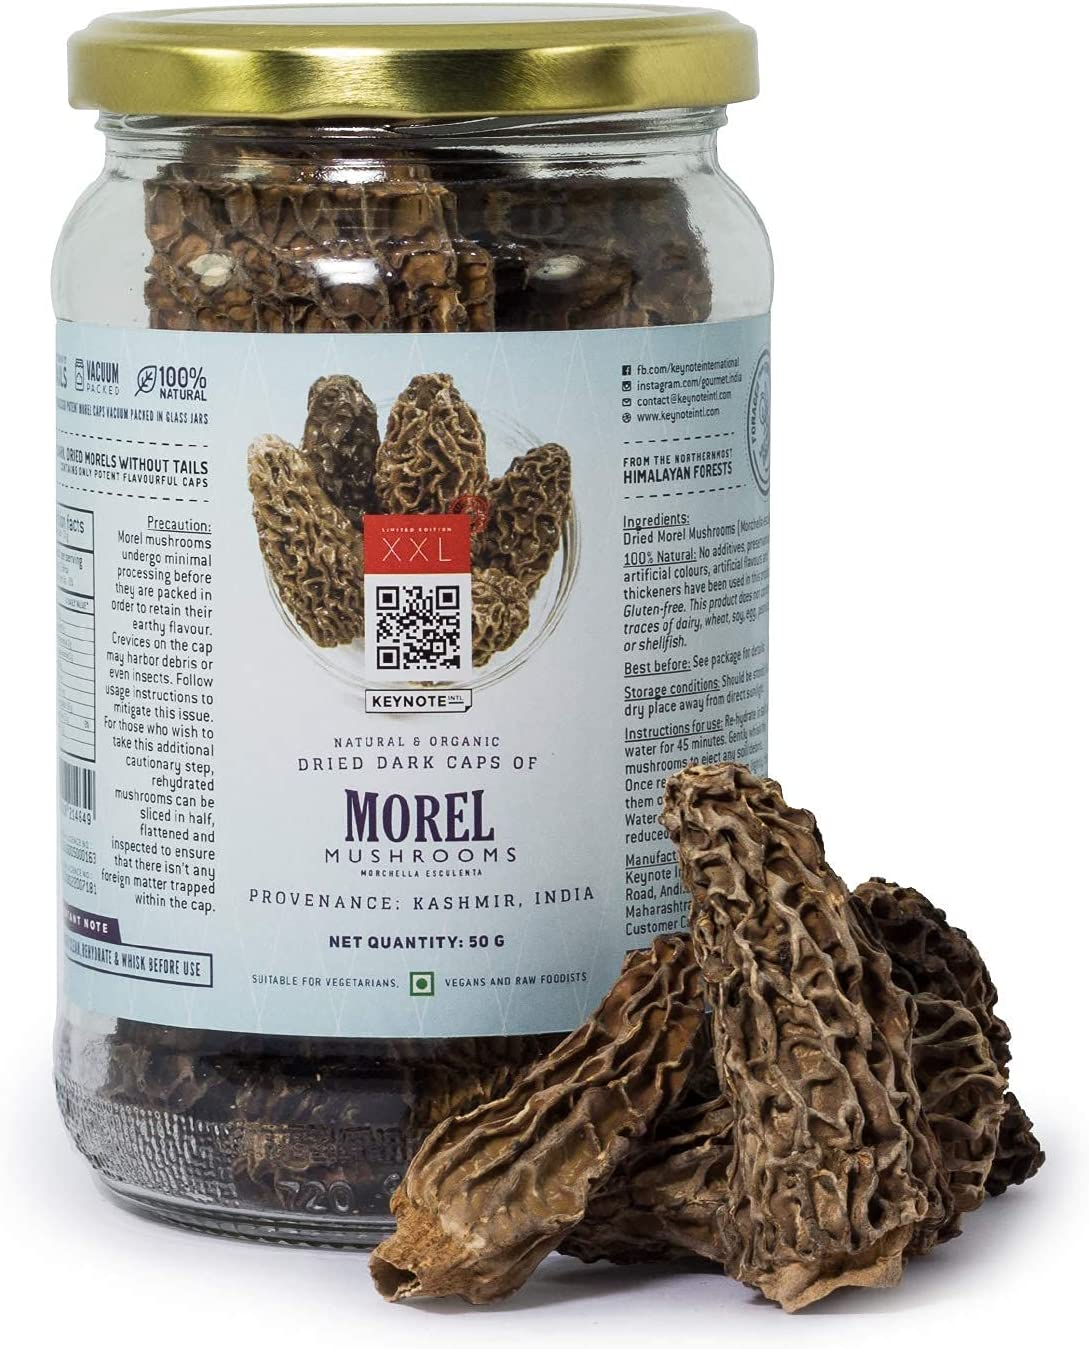 Carlos Keynote Morel Mushrooms Shipping included Dried Morels Dark Without Large Raleigh Mall